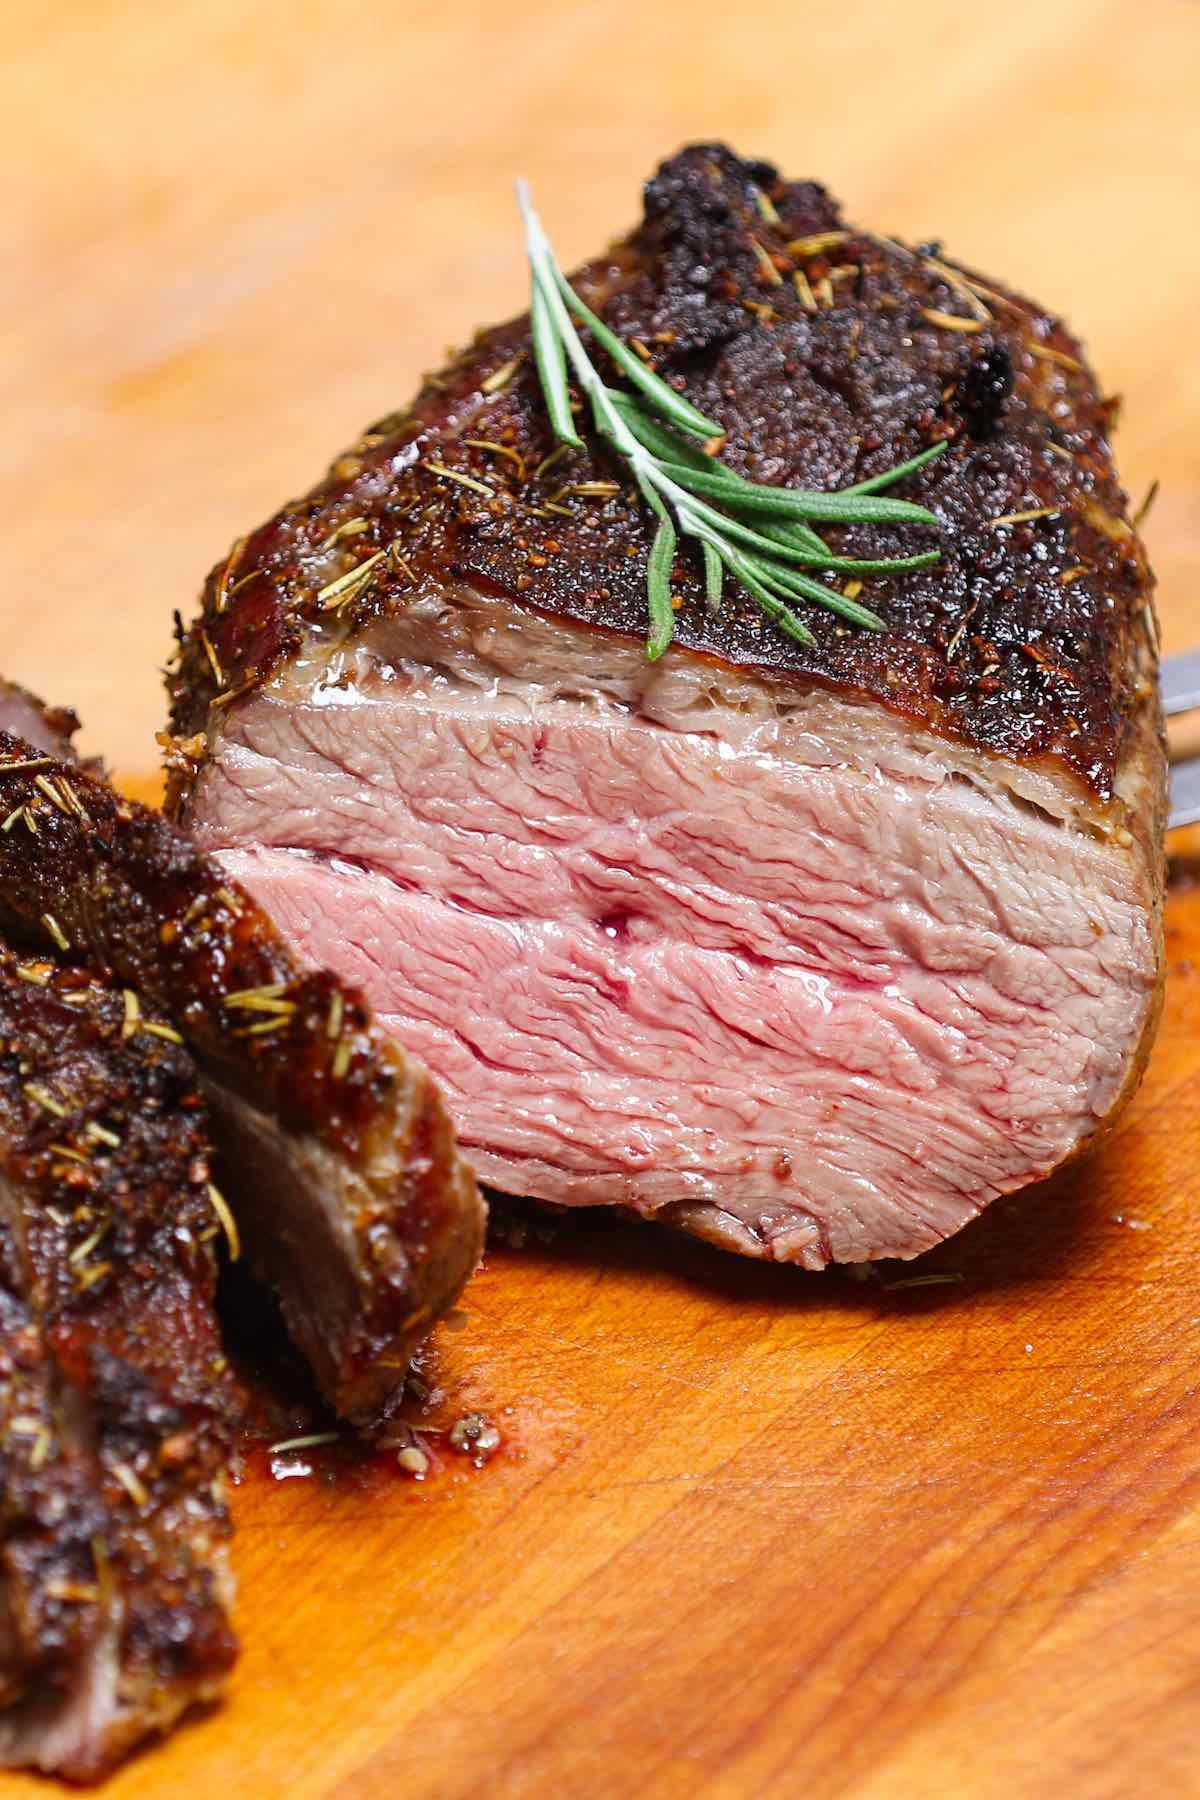 A juicy tri tip roast cooked to medium doneness in the oven